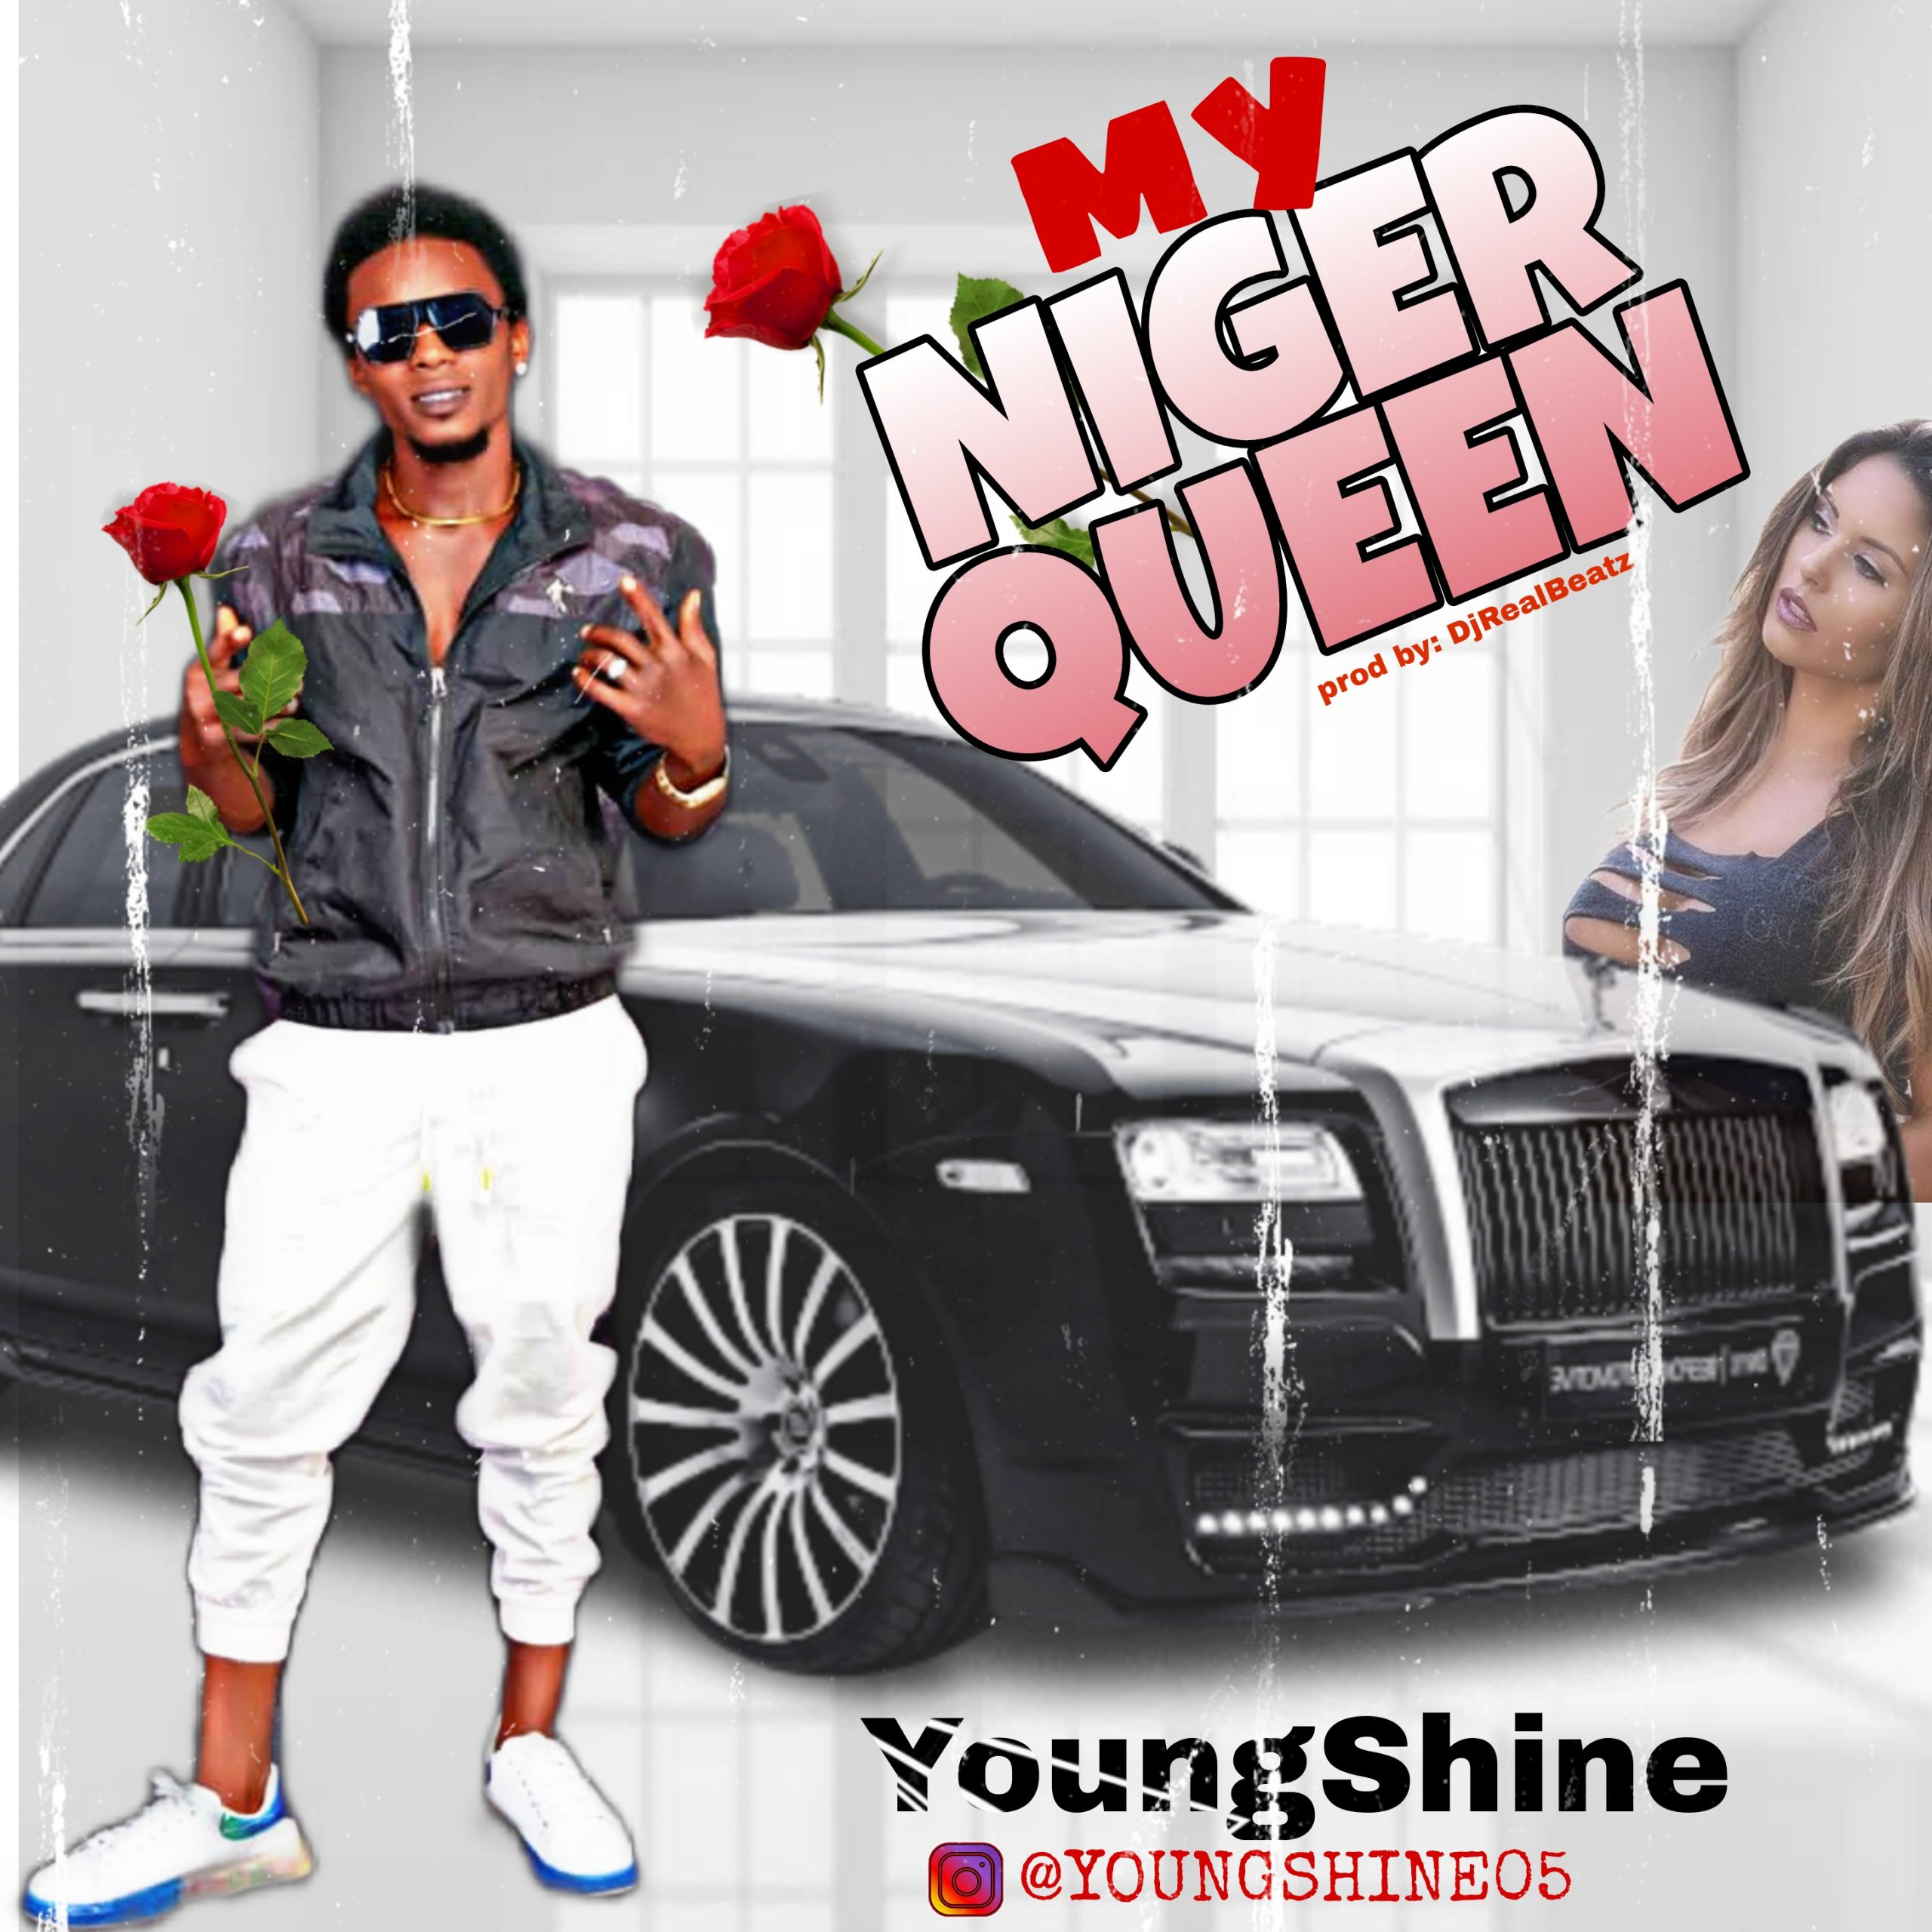 YoungShine - My Niger Queen